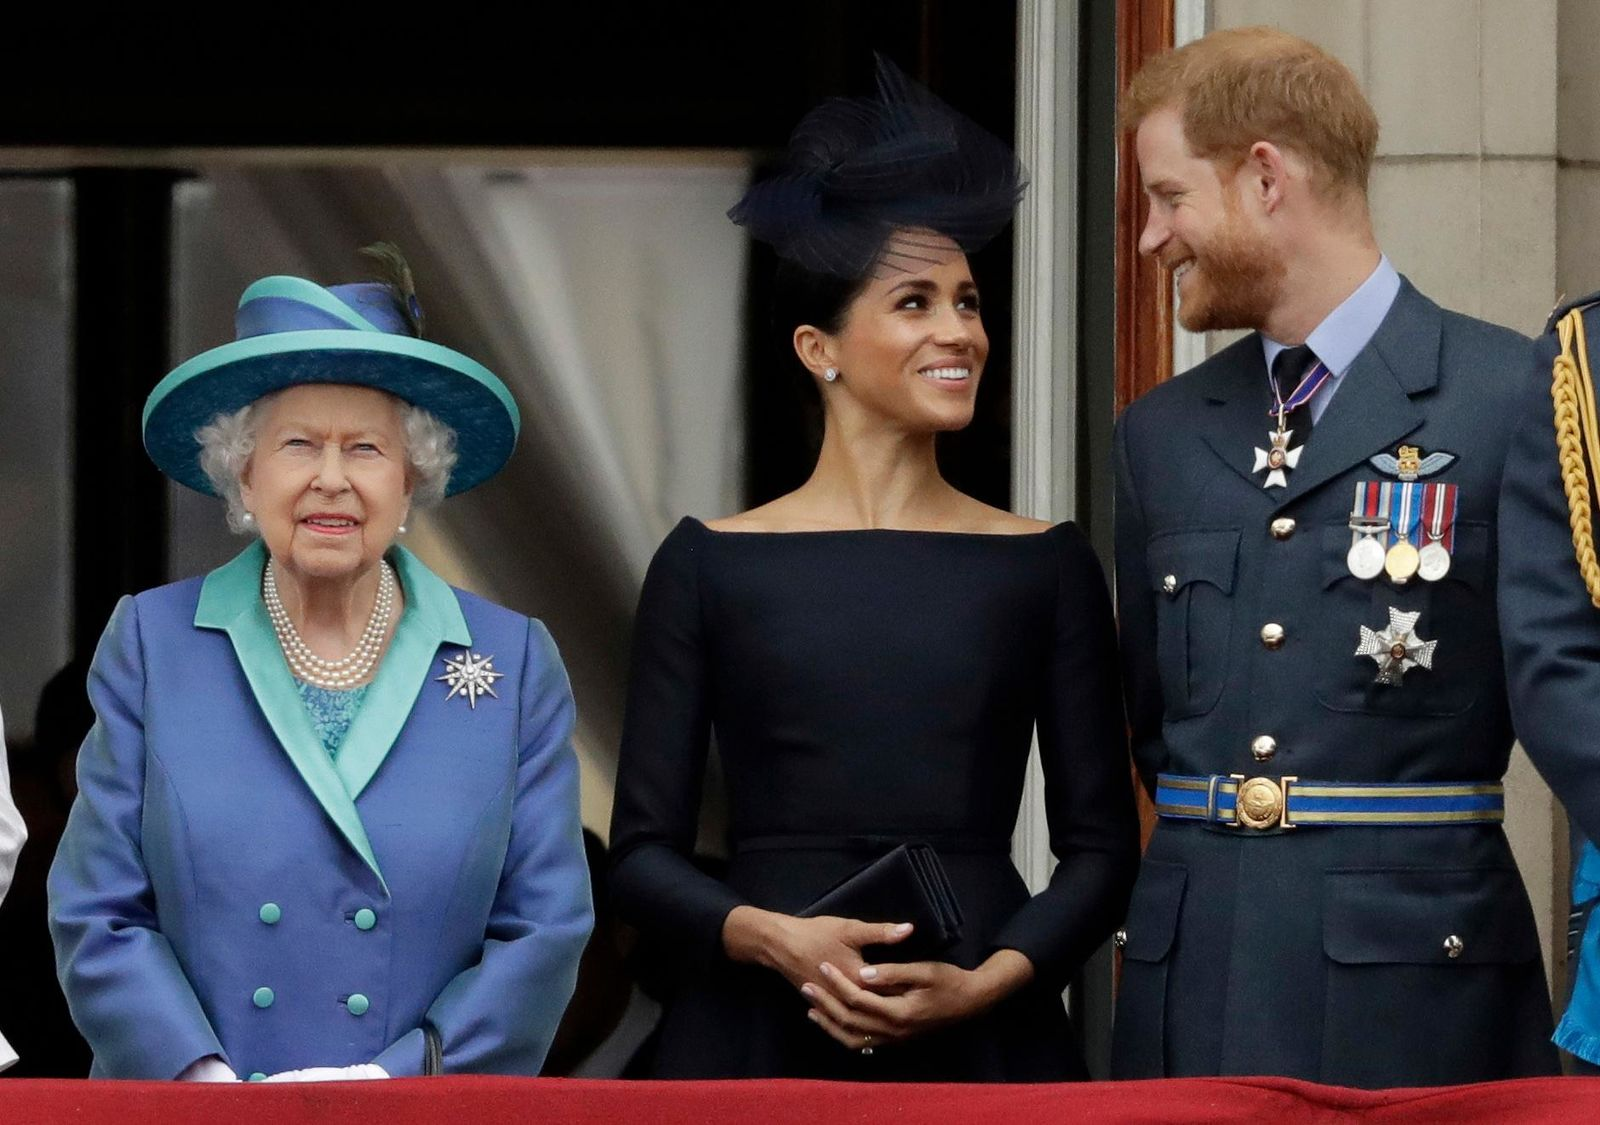 "FILE - In this Tuesday, July 10, 2018 file photo Britain's Queen Elizabeth II, and Meghan the Duchess of Sussex and Prince Harry watch a flypast of Royal Air Force aircraft pass over Buckingham Palace in London. As part of a surprise announcement distancing themselves from the British royal family, Prince Harry and his wife Meghan declared they will ""work to become financially independent"" _ a move that has not been clearly spelled out and could be fraught with obstacles. (AP Photo/Matt Dunham, File)"